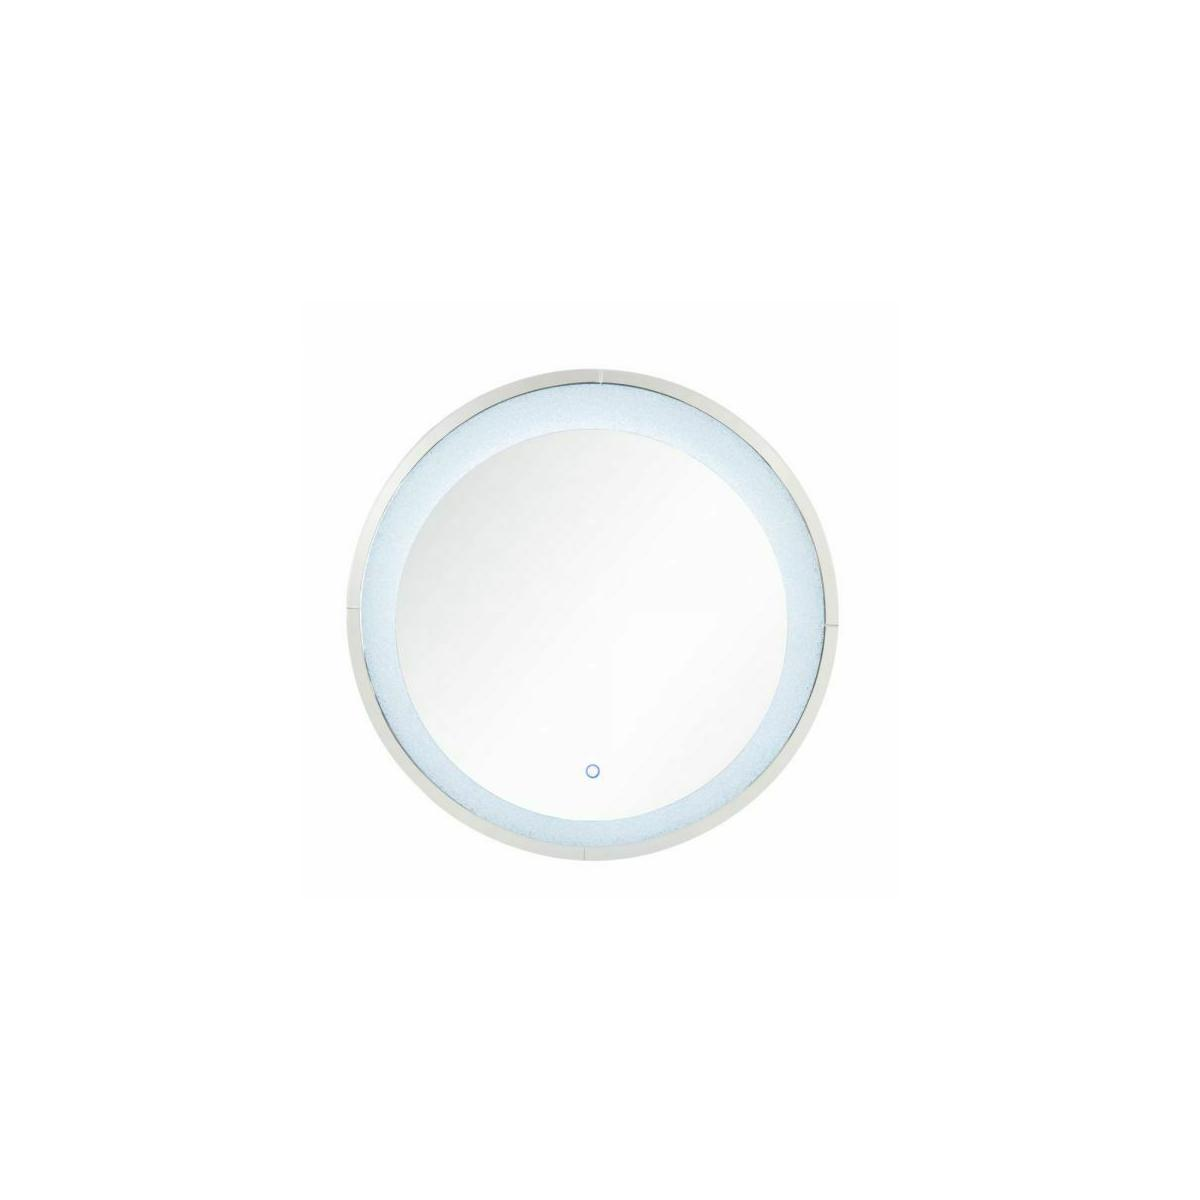 ACME Noralie Wall Decor (LED) - 97709 - Glam - LED Light, Mirror, Glass, MDF, Faux Diamonds (Acrylic) - Mirrored and Faux Diamonds